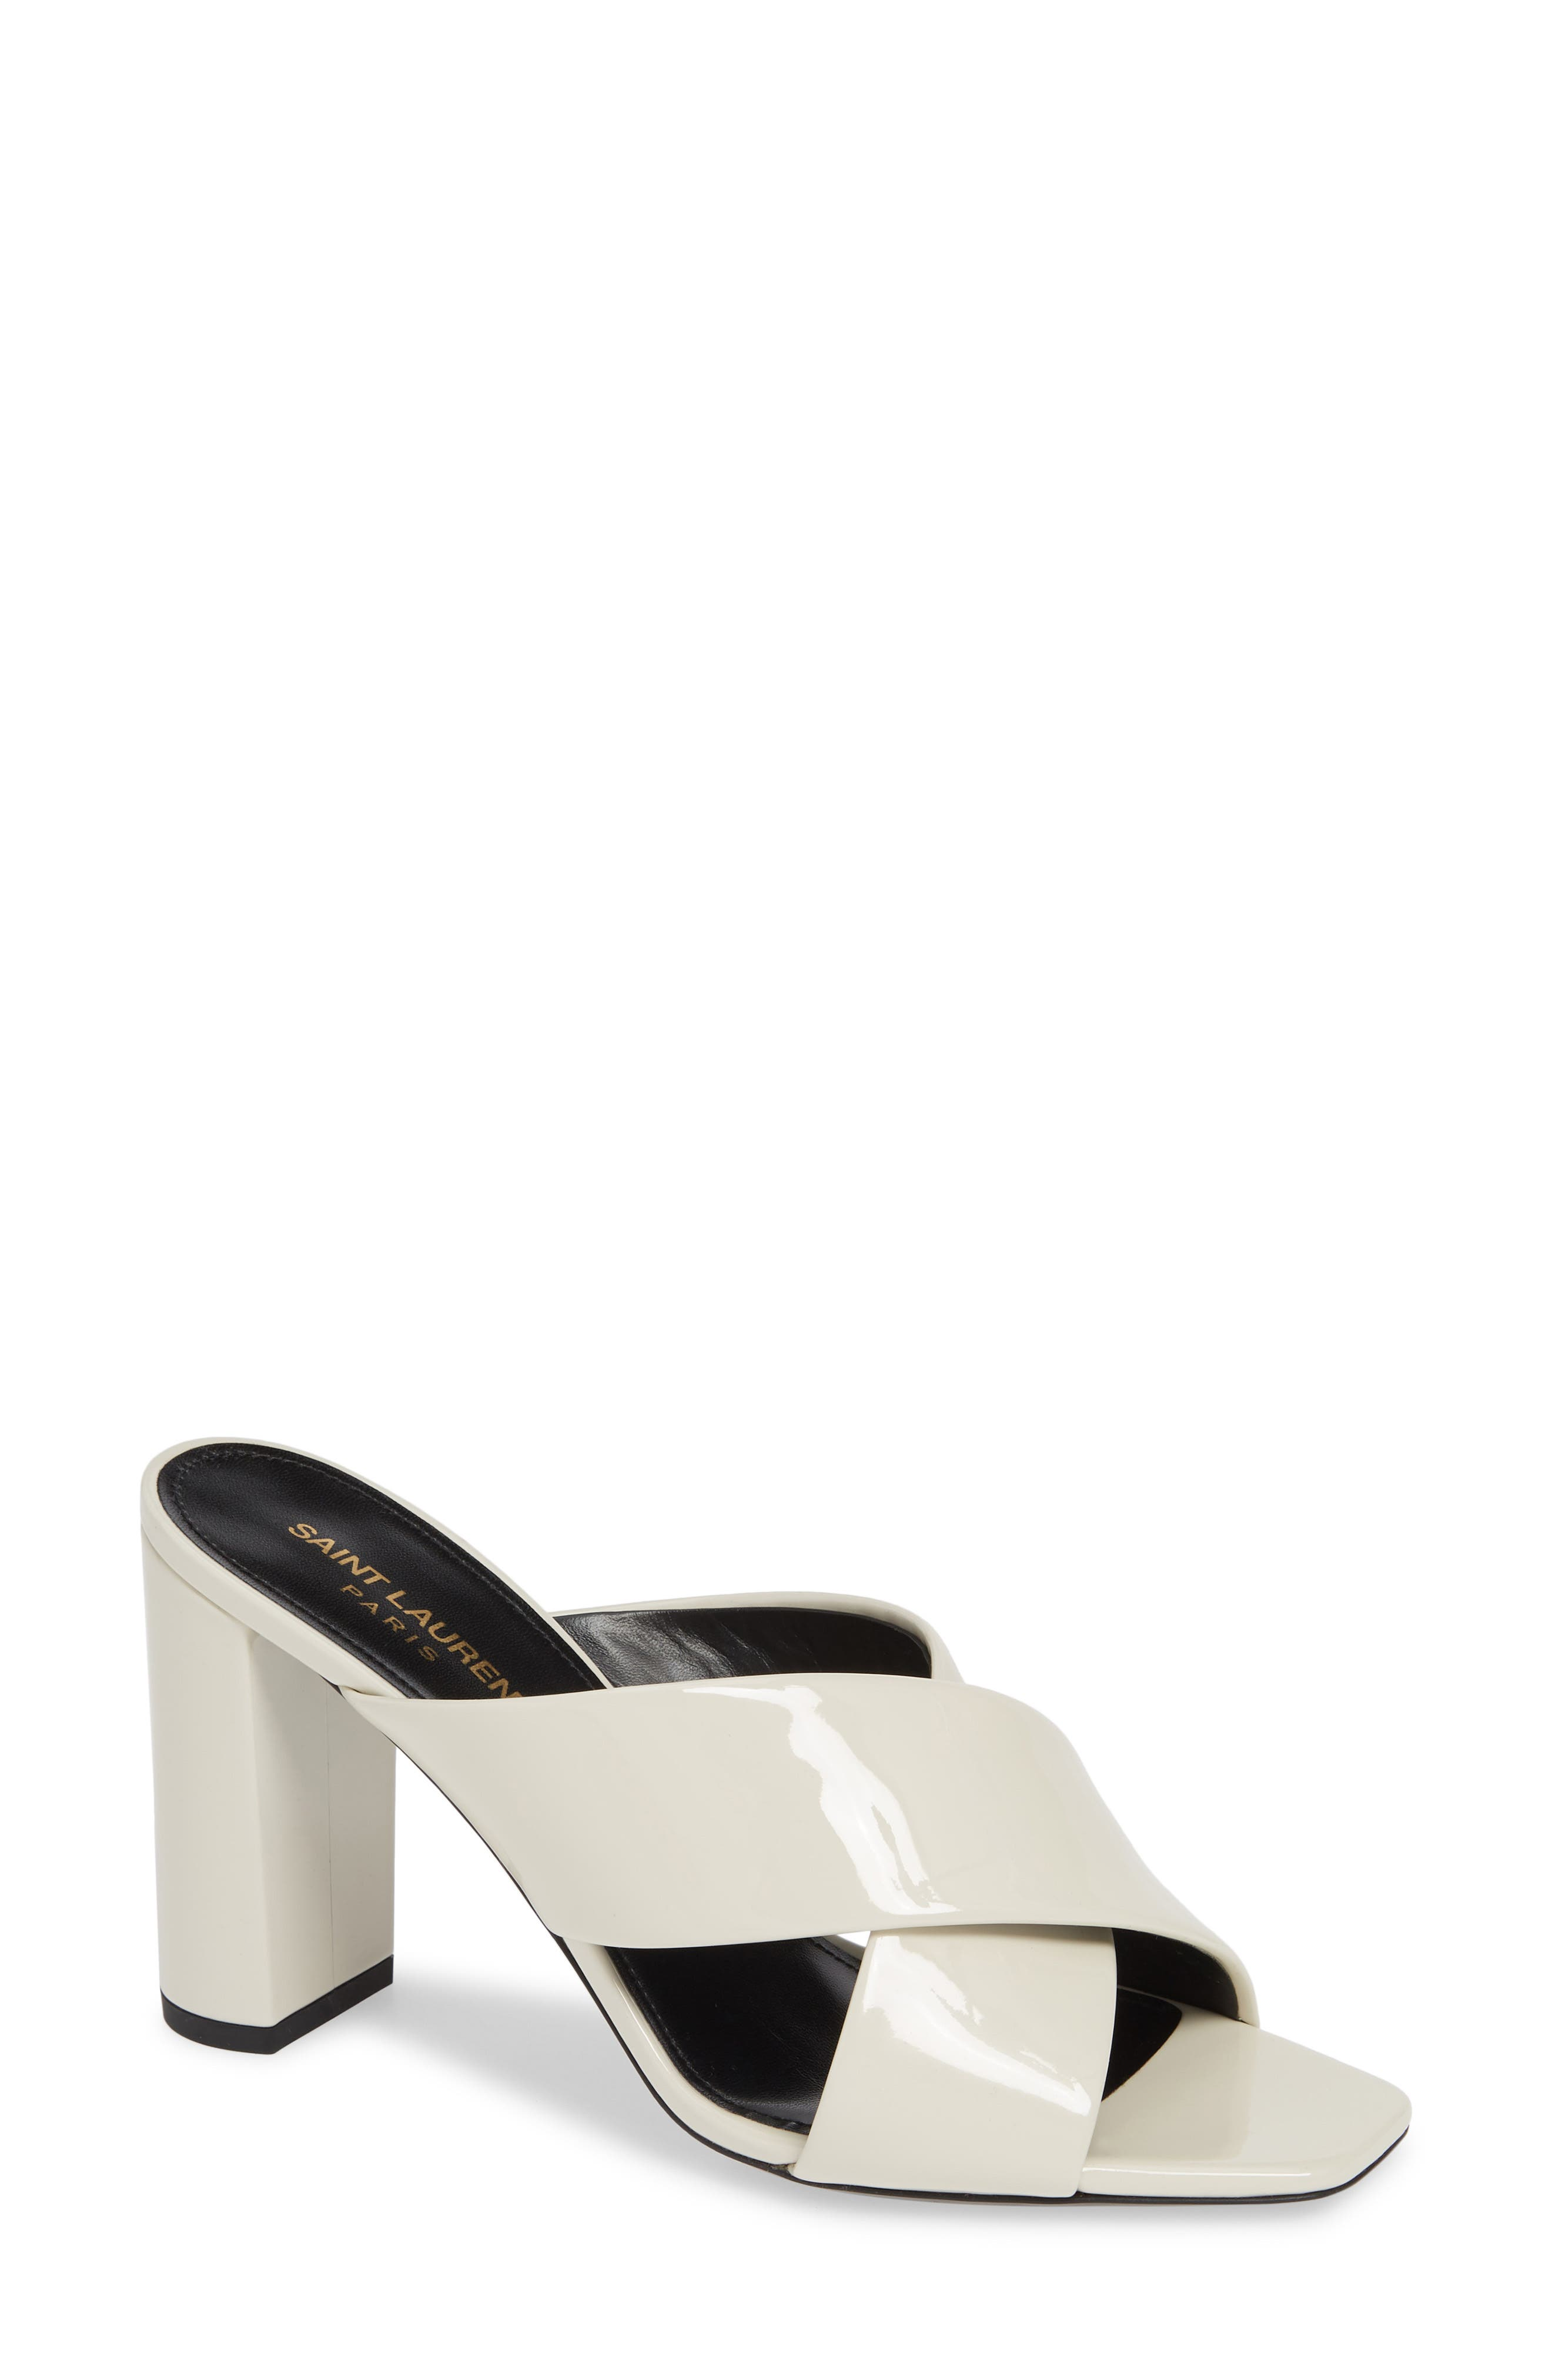 56eb060e35f07 Saint Laurent Block-Heel Sandals for Women